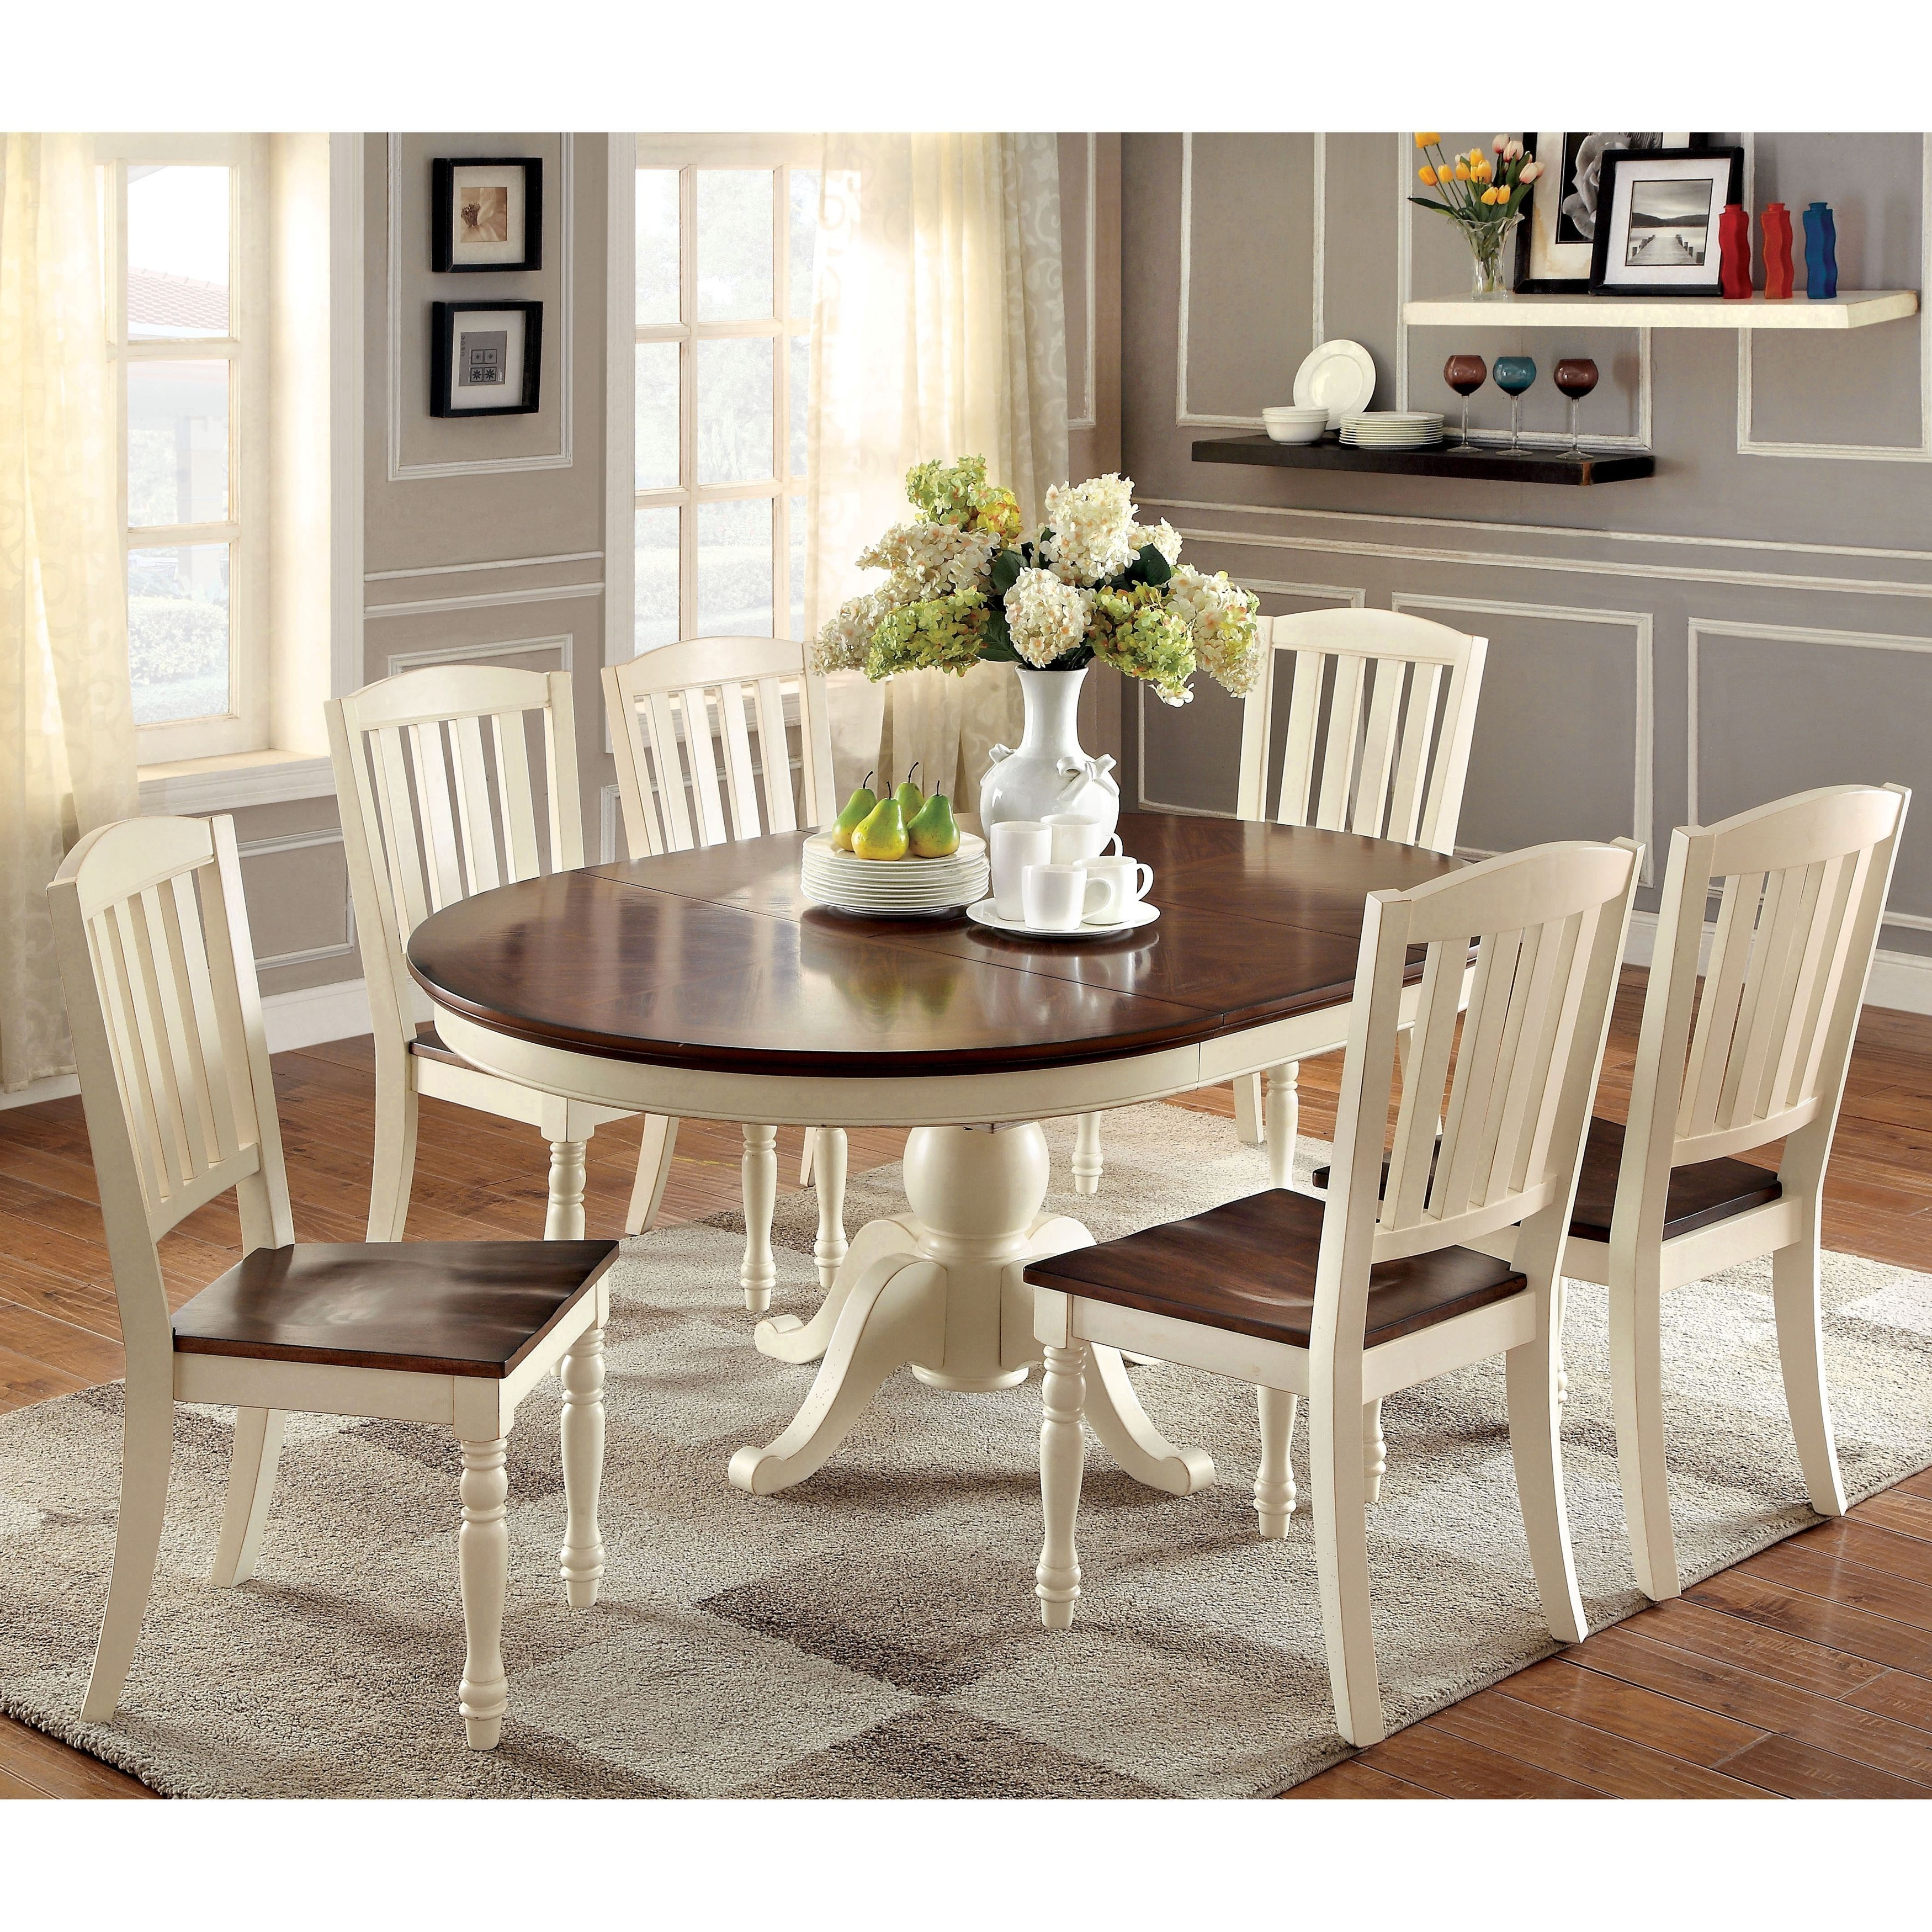 Recent Laurent 7 Piece Rectangle Dining Sets With Wood Chairs Pertaining To Furniture Of America Bethannie 7 Piece Cottage Style Oval Dining Set (View 15 of 25)